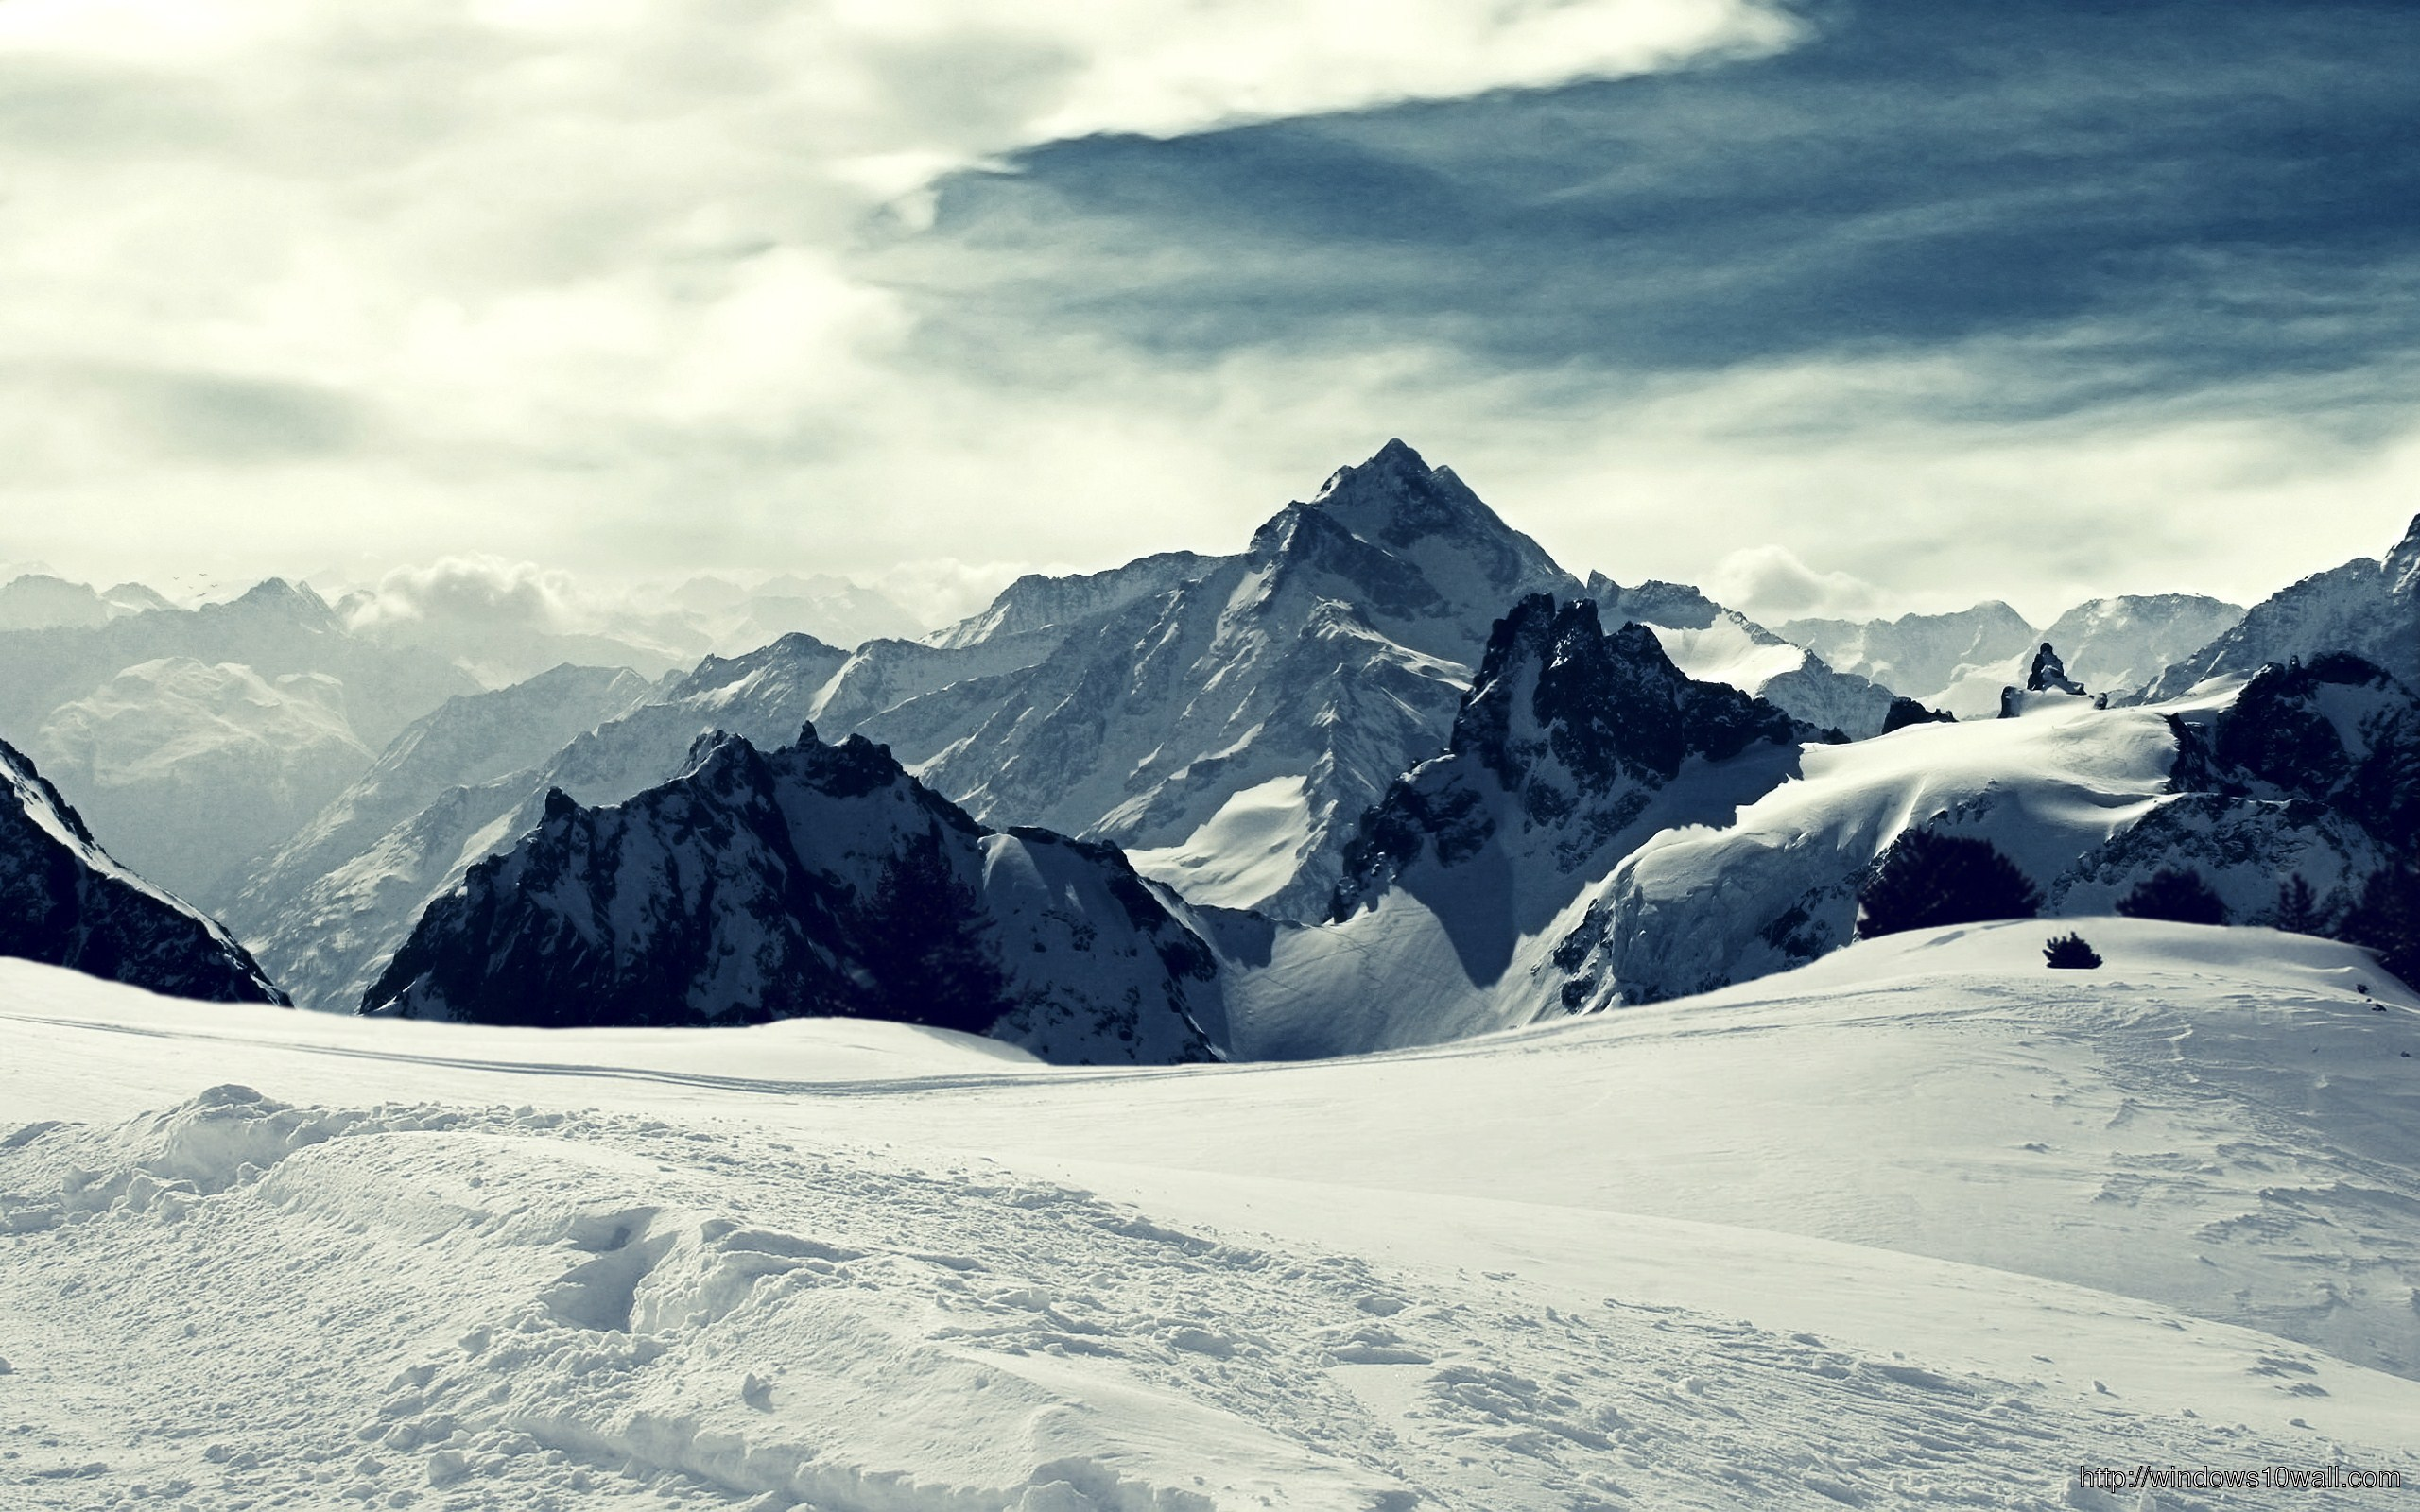 Most Inspiring Wallpaper Mountain Windows 10 - Winter-Mountains-Picture  Graphic_293182.jpg